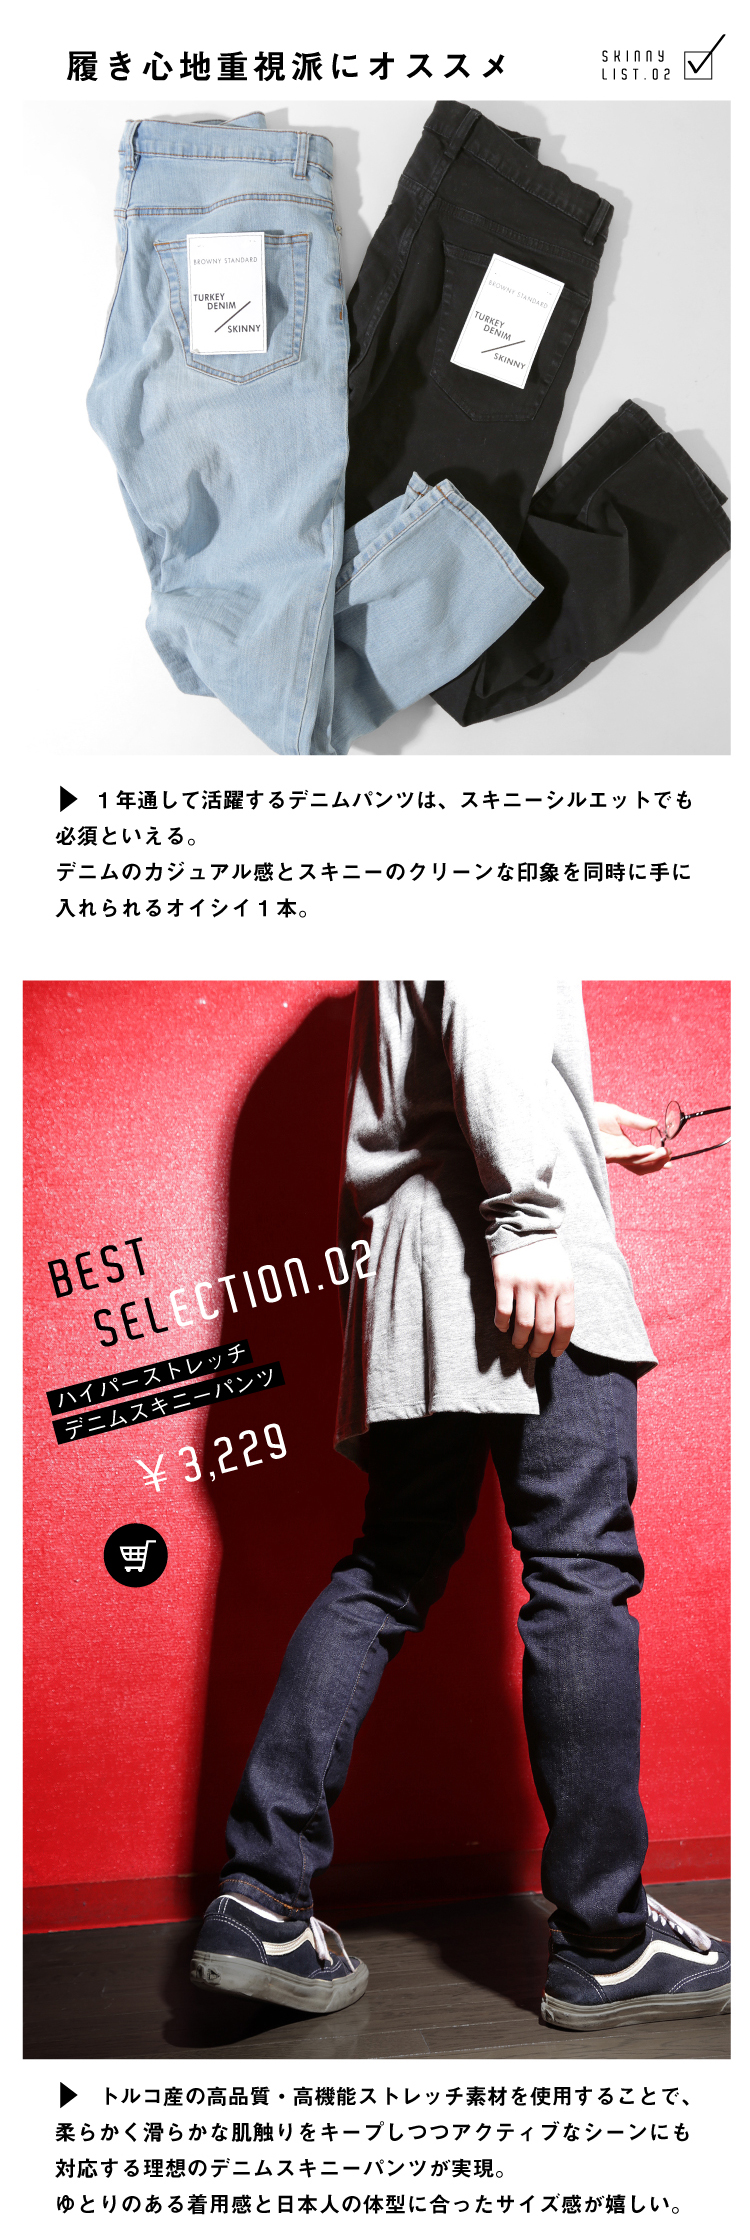 BEST SELECTION MENS VOL.10